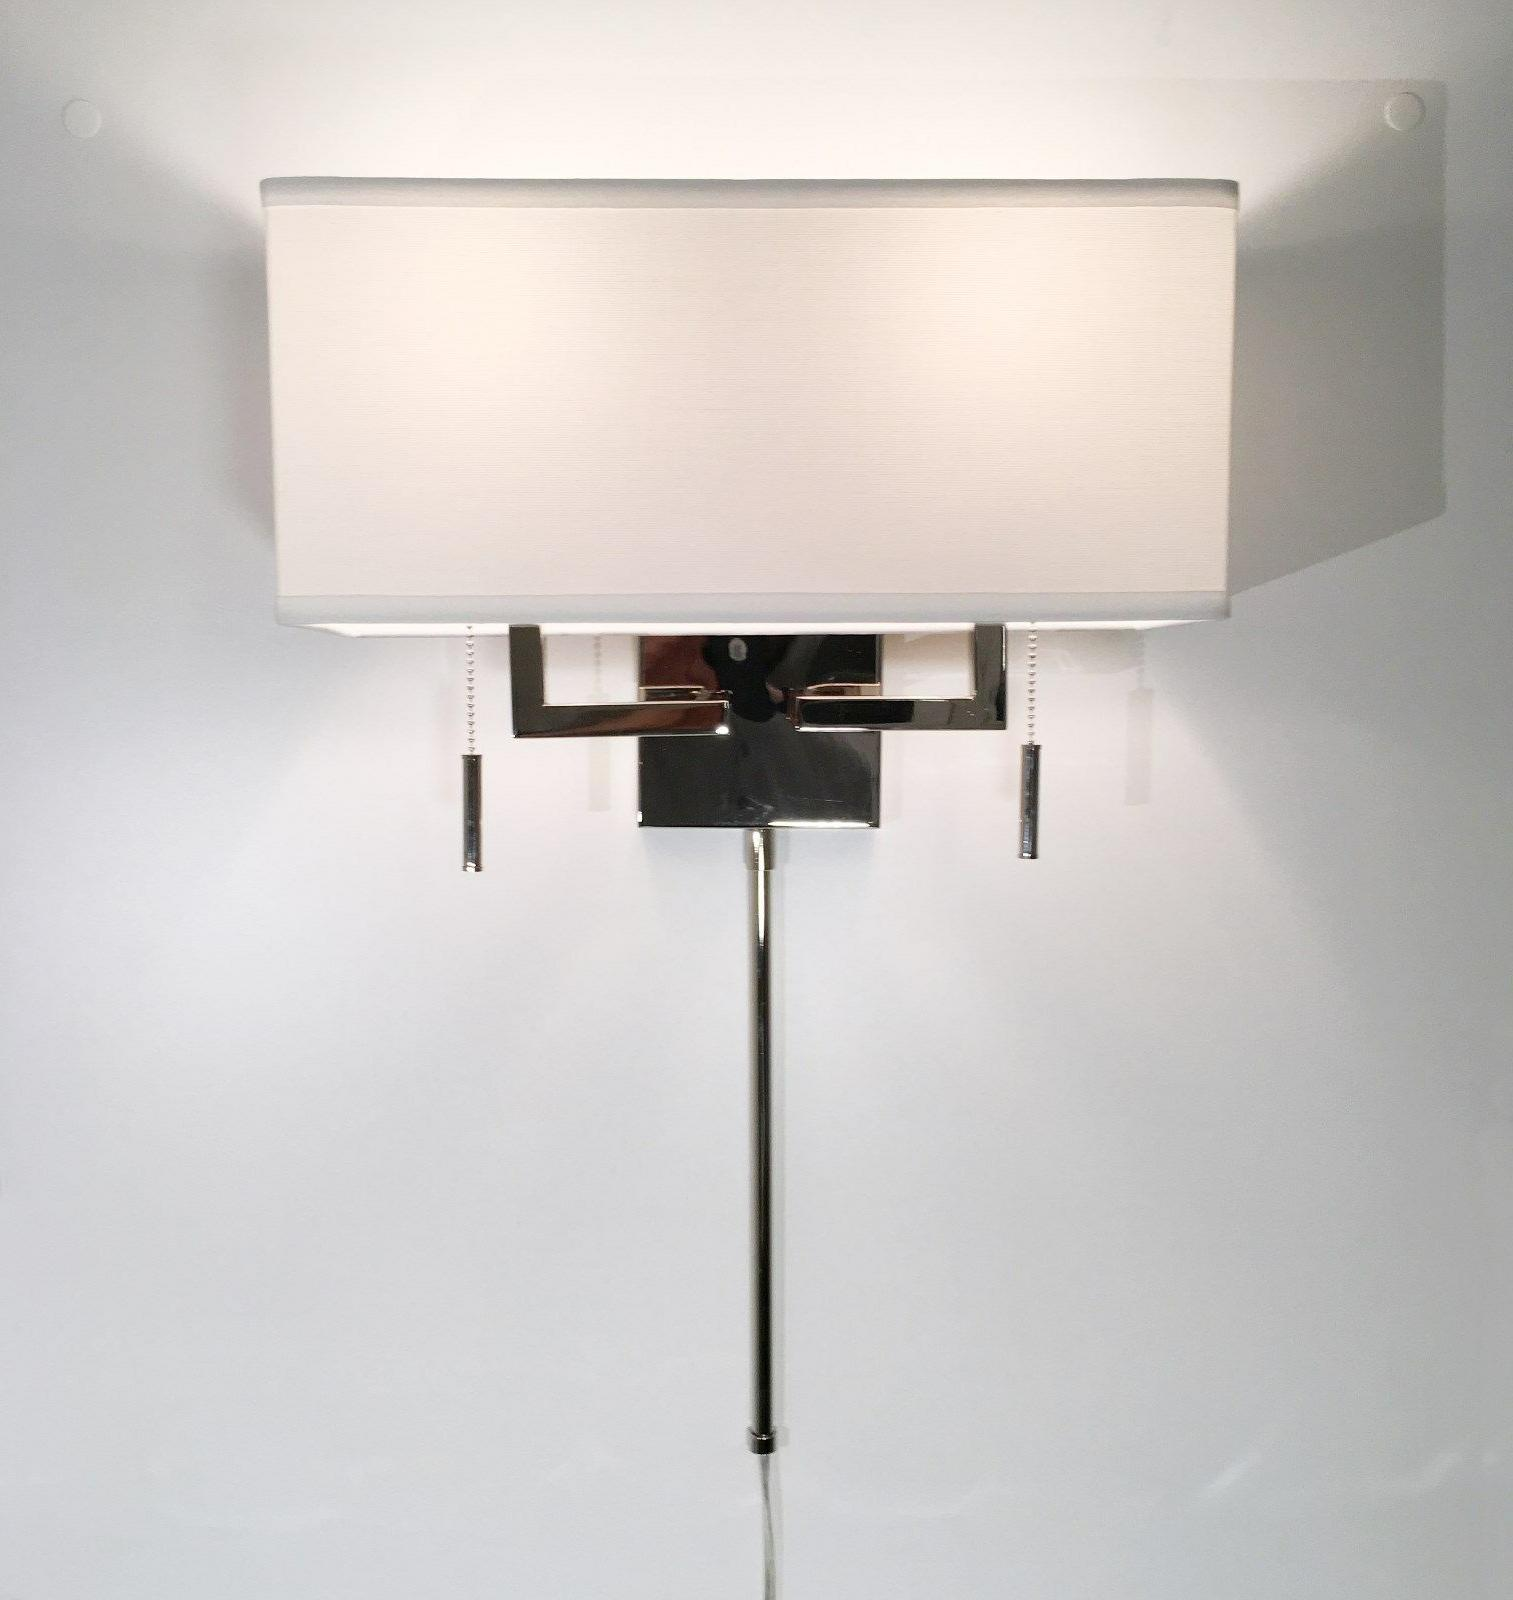 Polished Modern Sconce Light with Hardwire